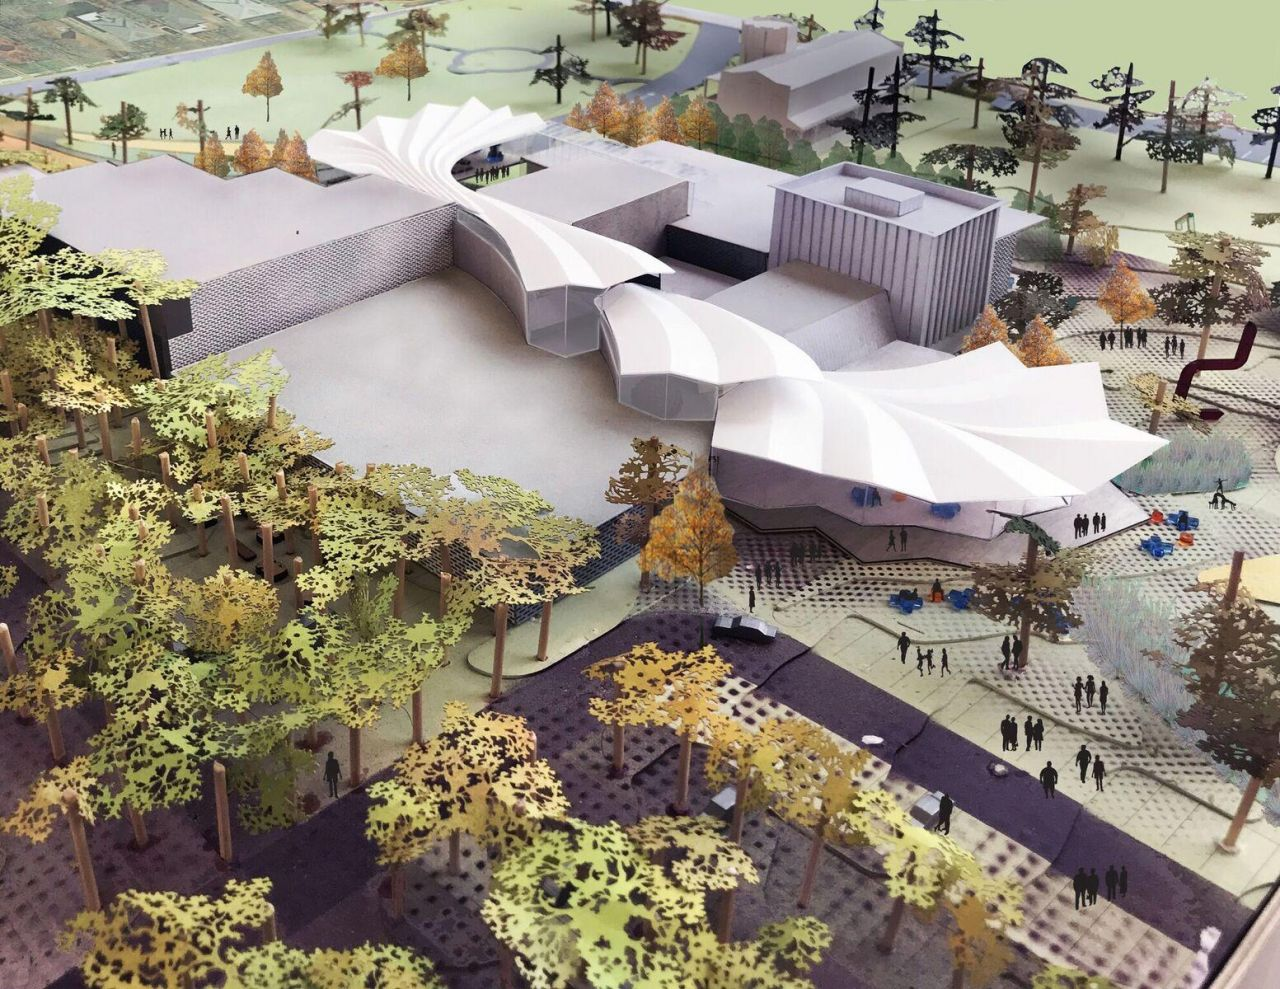 Model for Arkansas Arts Center Renovation